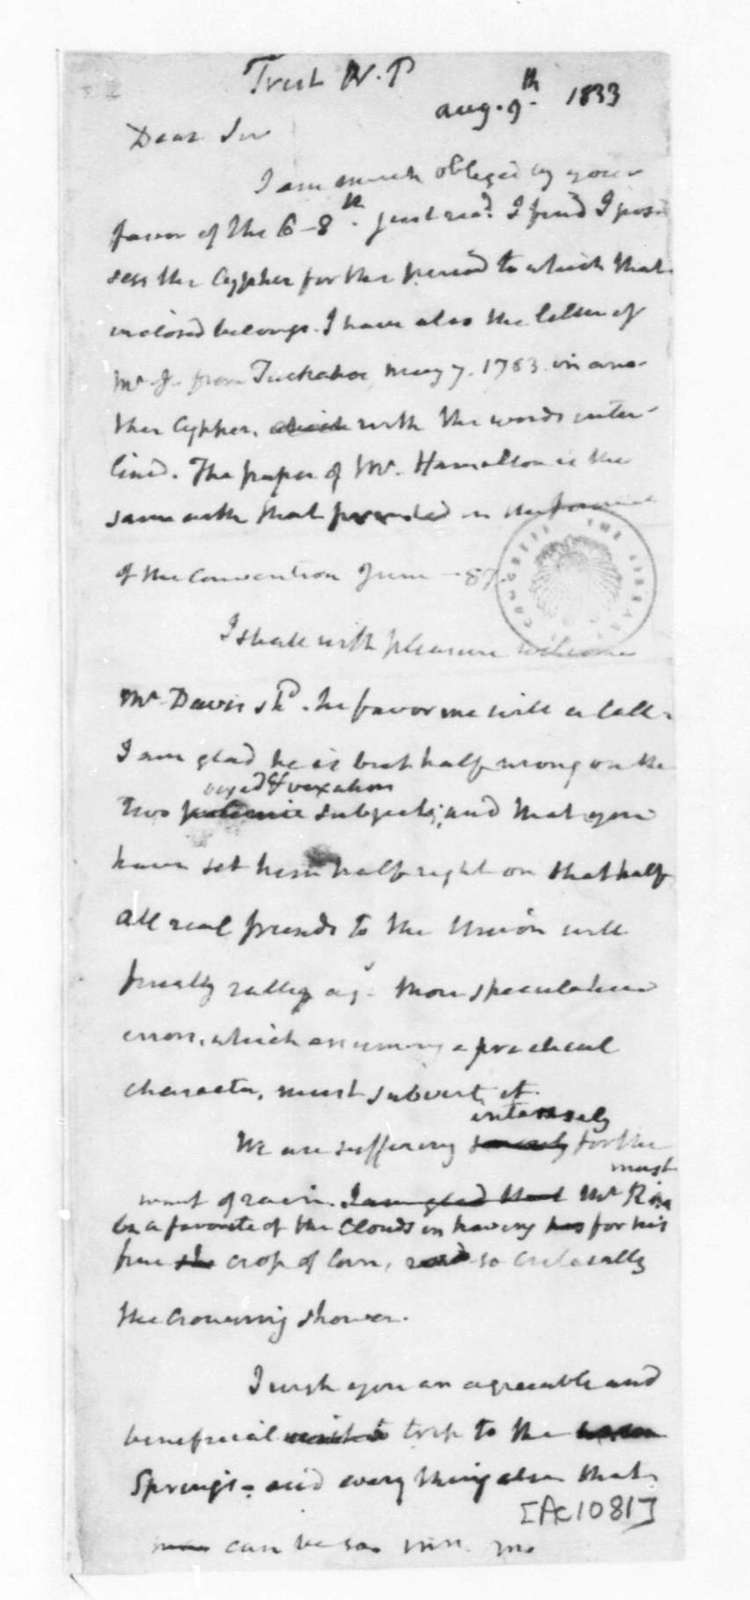 James Madison to Nicholas P. Trist, August 9, 1833. With Copy.